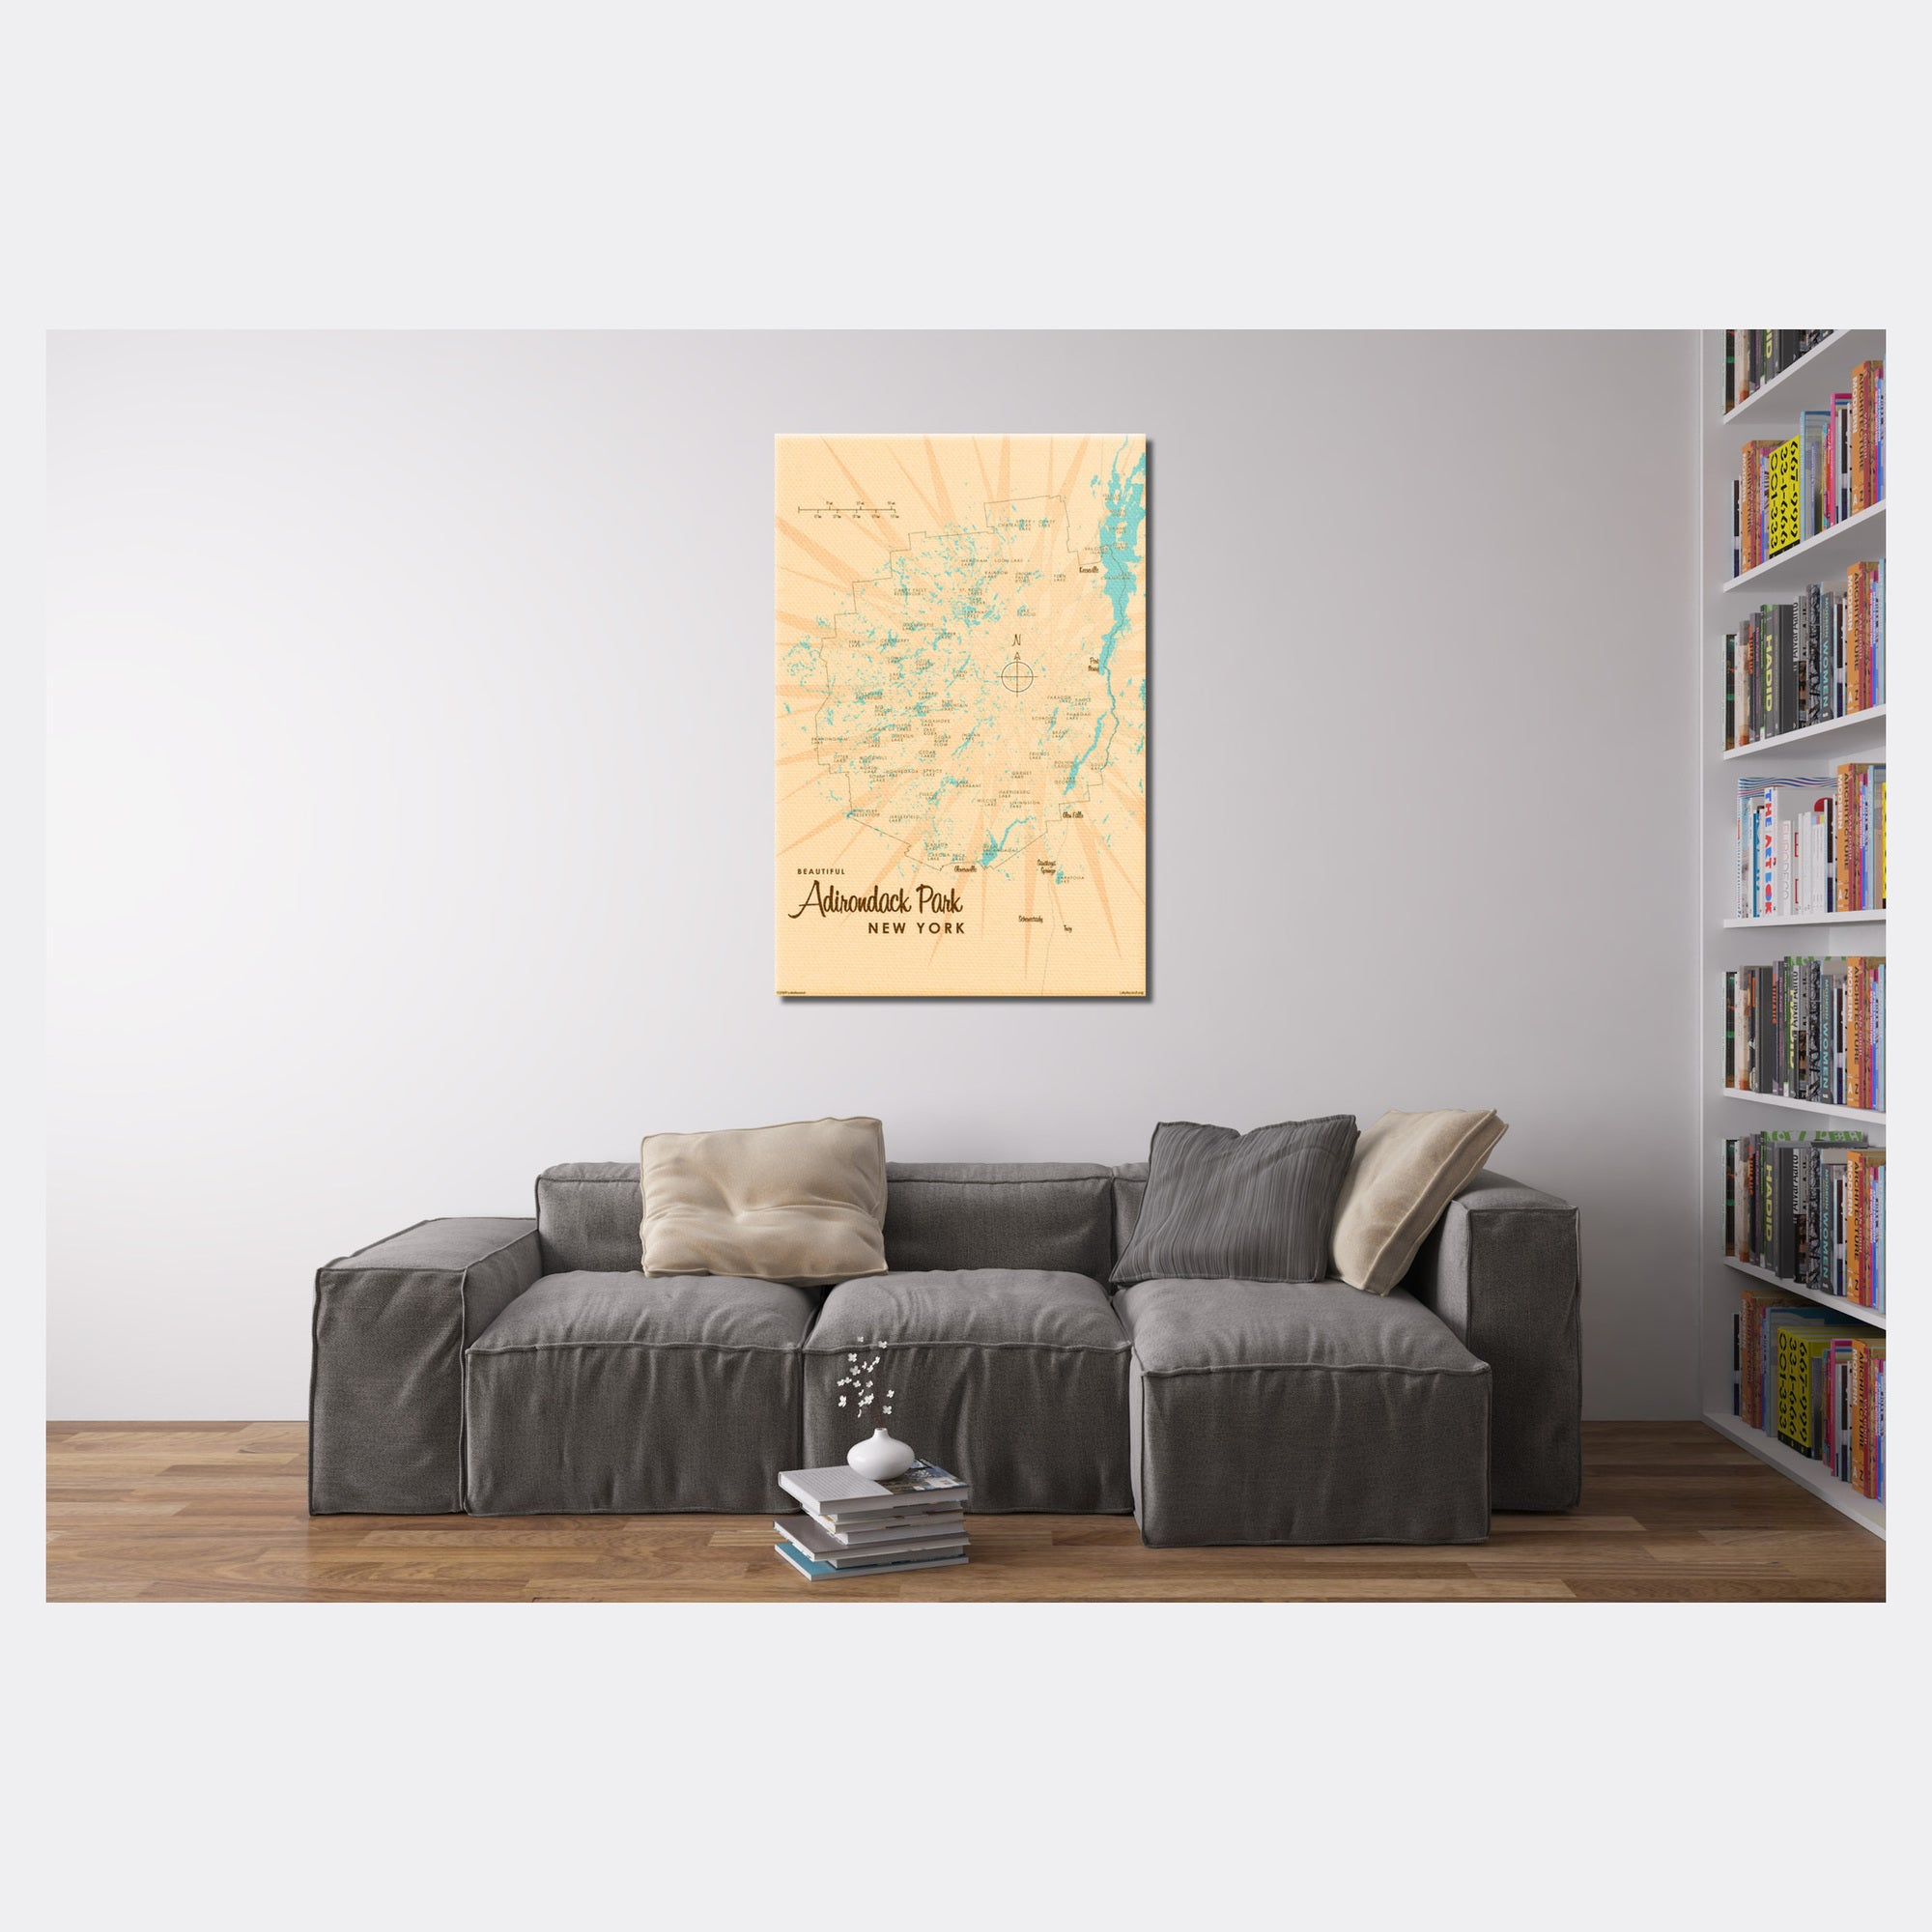 Adirondack Park, New York, Canvas Print